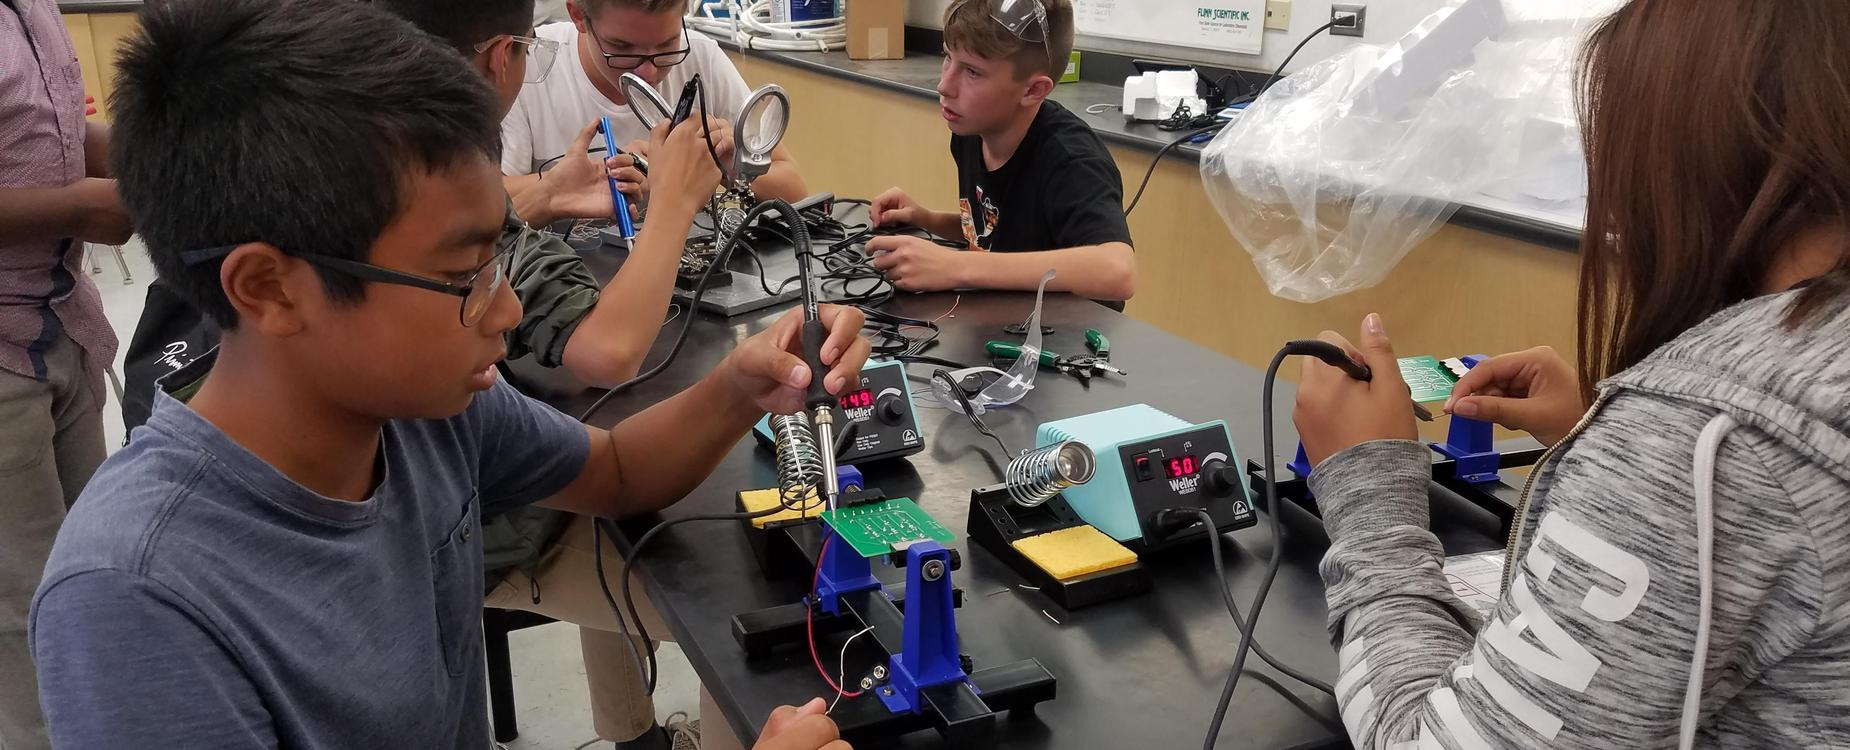 STEM Students Soldering